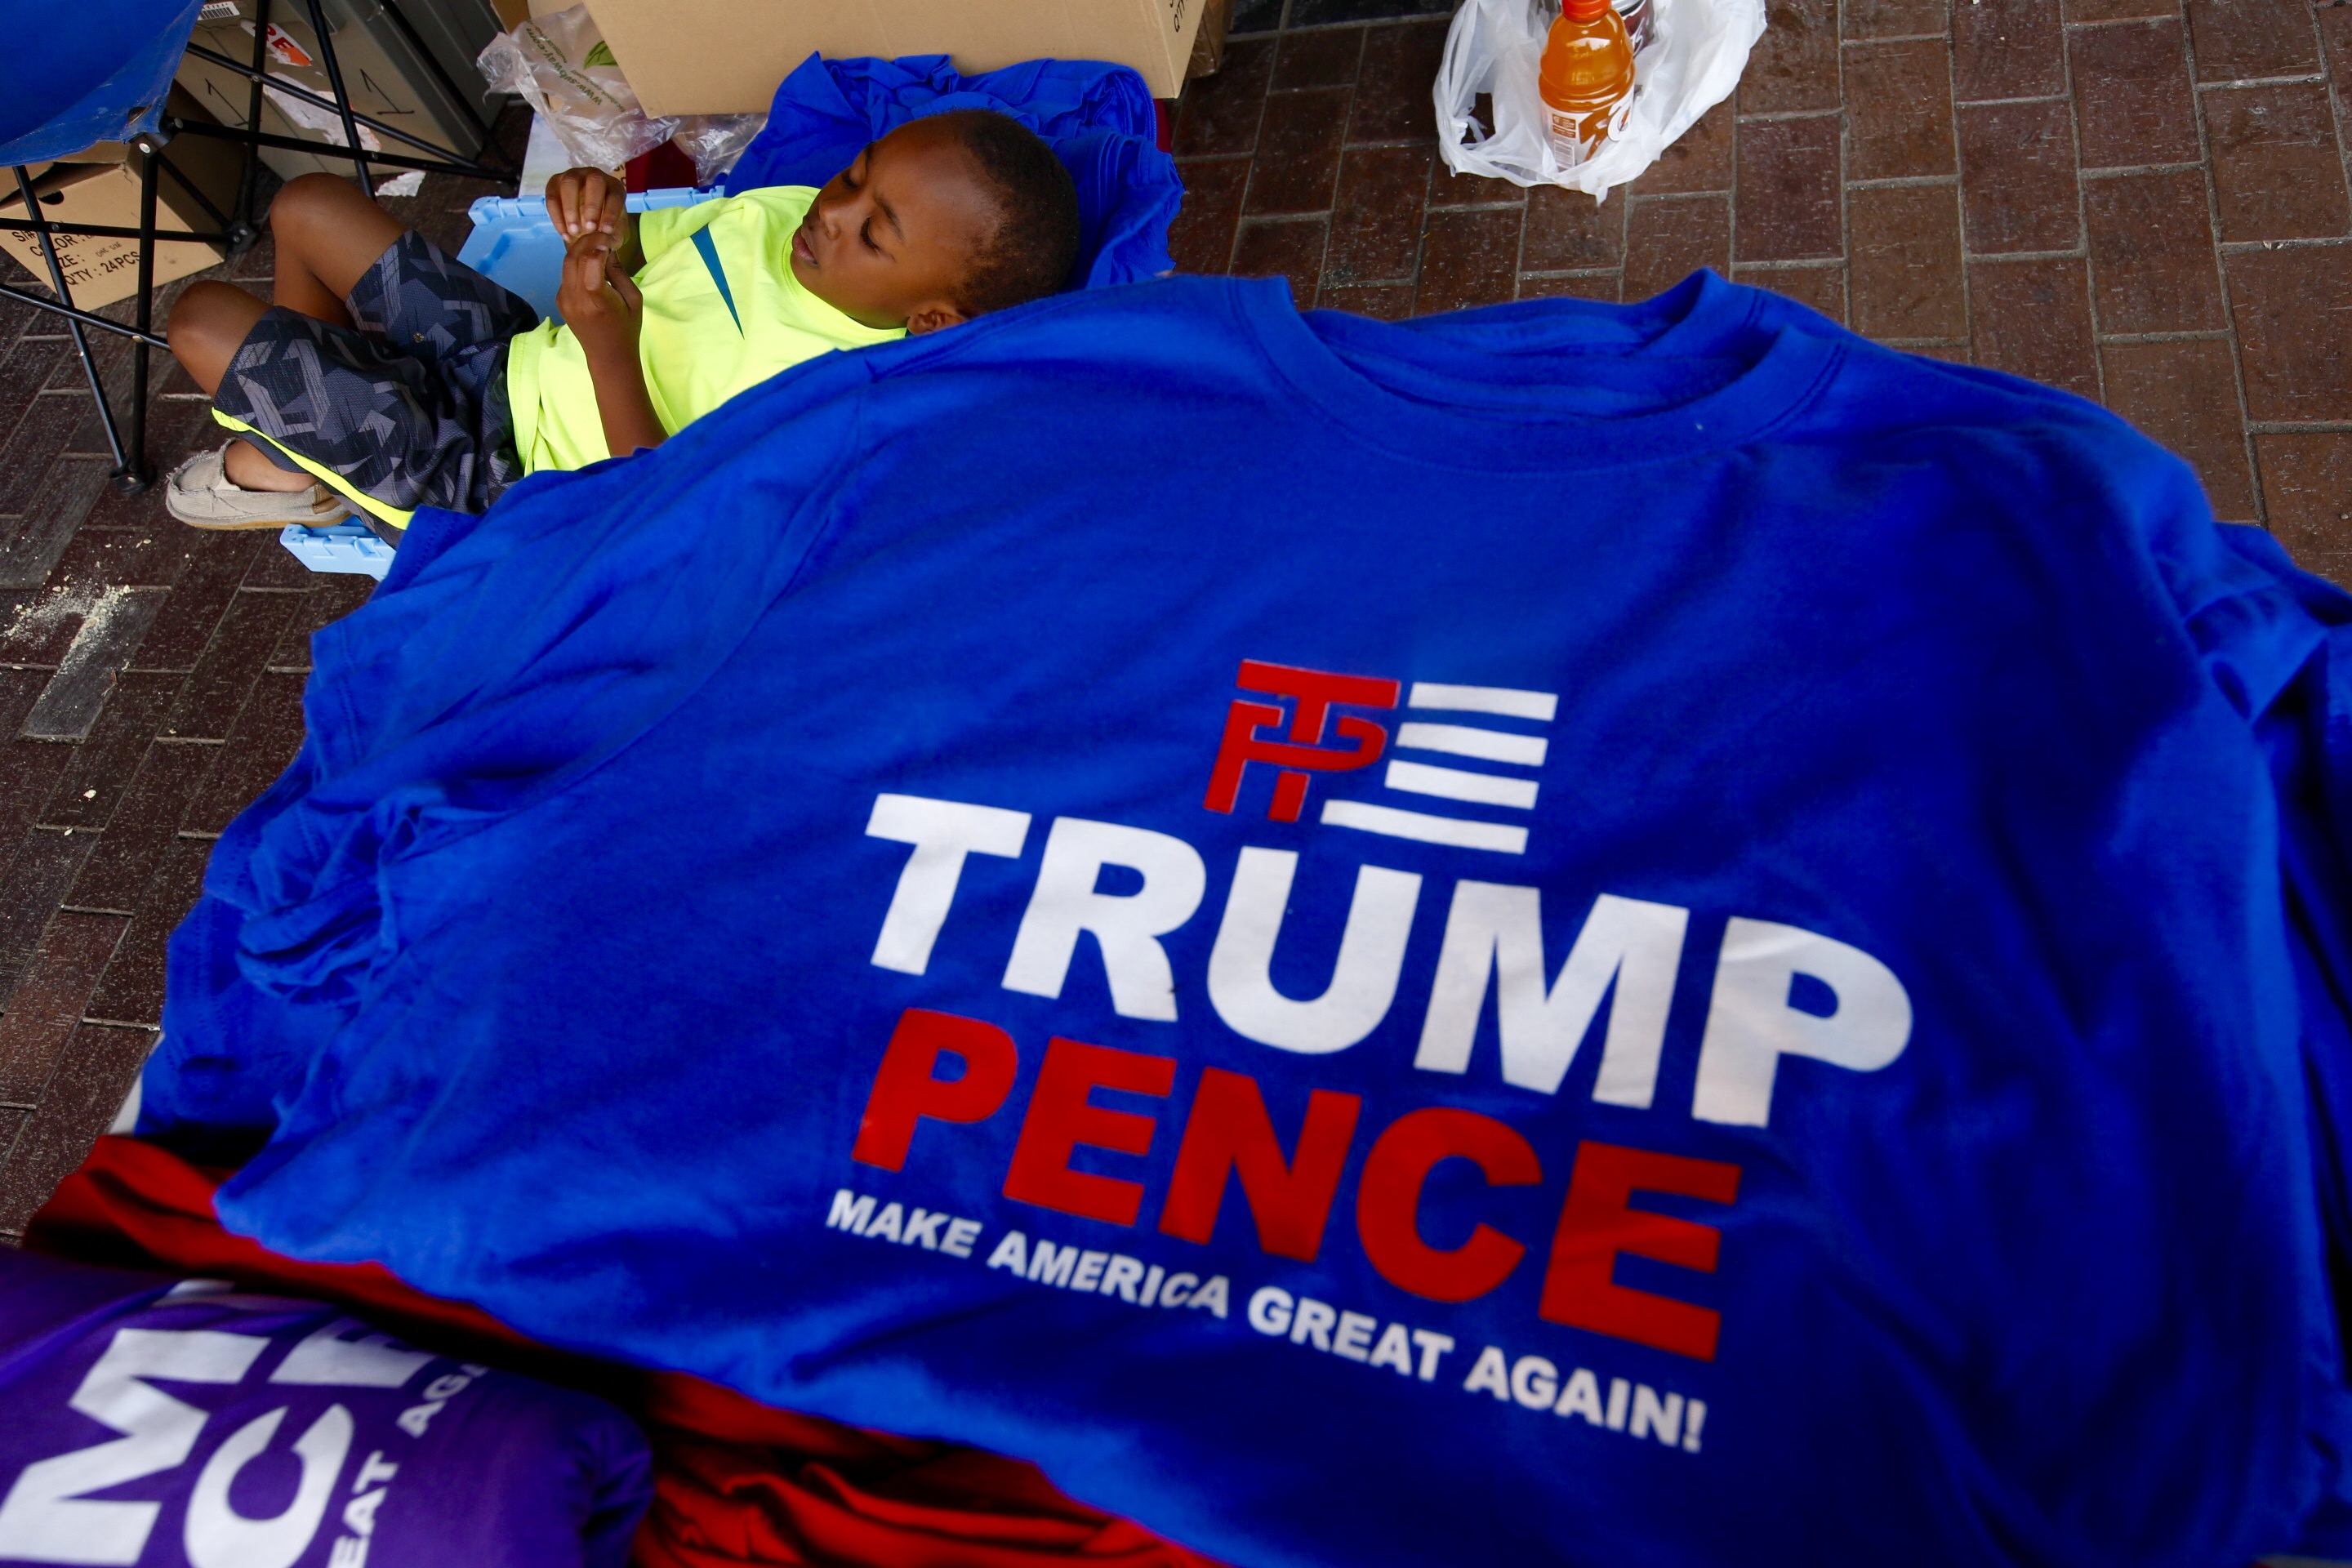 Brighton Williams , age 4, of South Carolina waits as his father Shawn Williams sells Trump t-shirts and buttons in downtown Cleveland Tuesday, July 19, 2016.